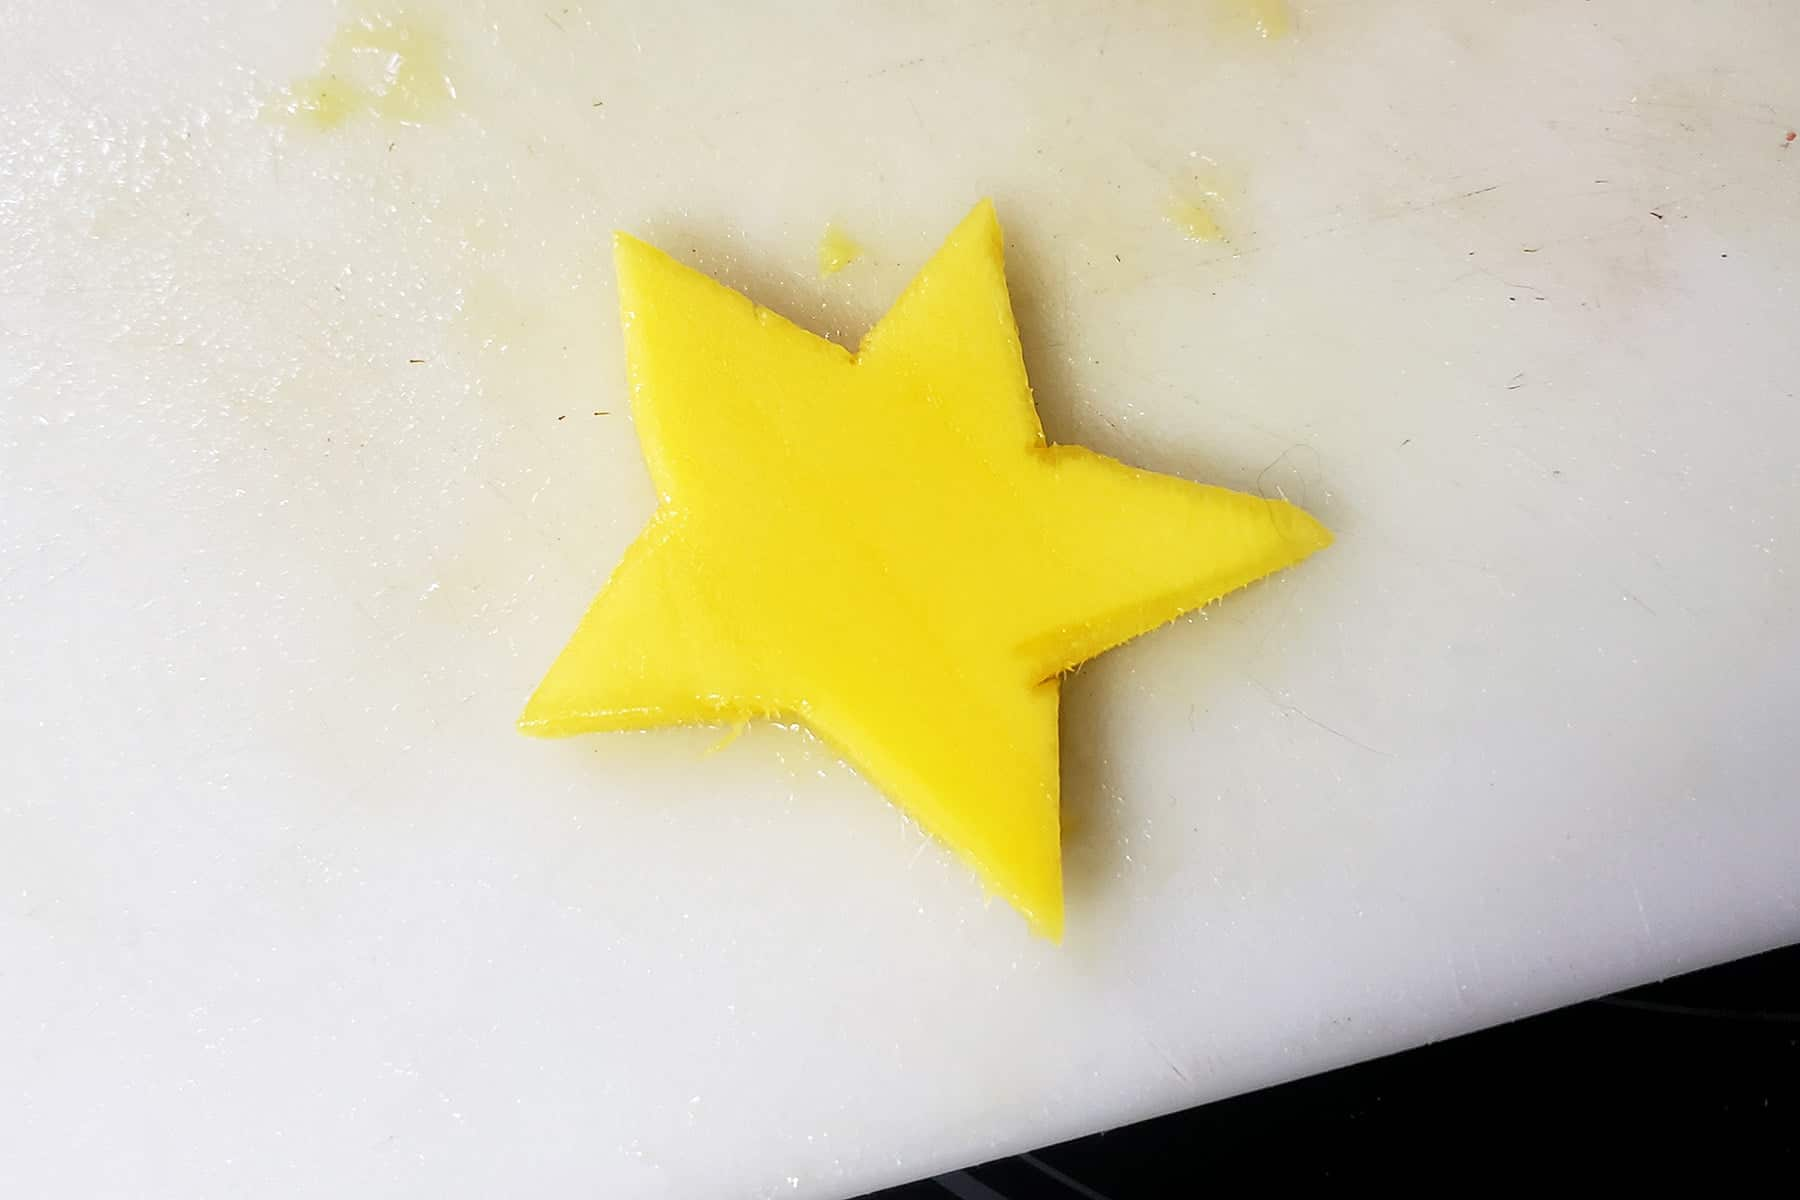 A slice of mango has been cut to look like a star.